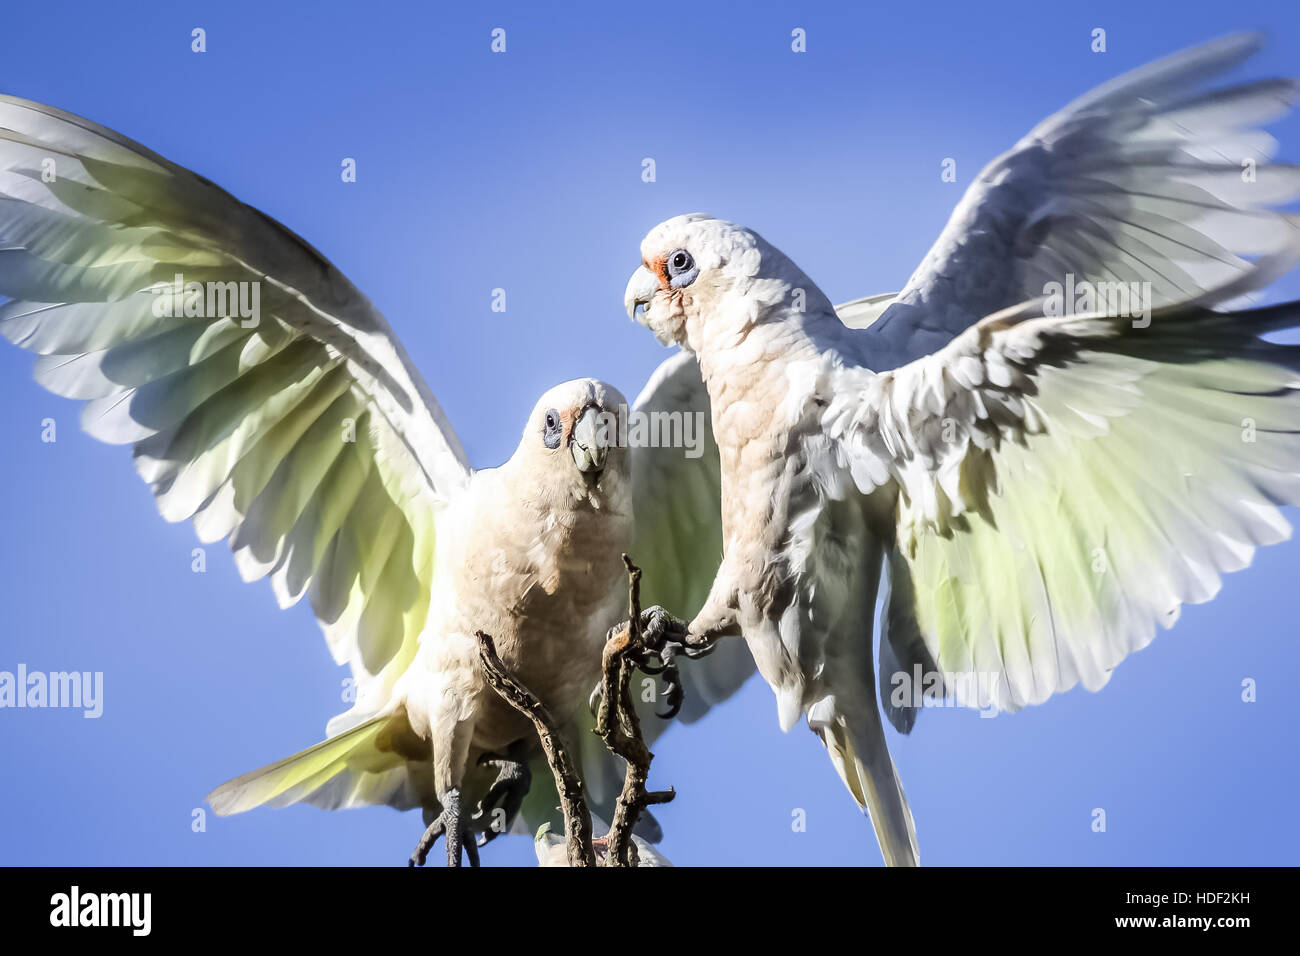 Cockatoos approaching a tree in Australia - Stock Image